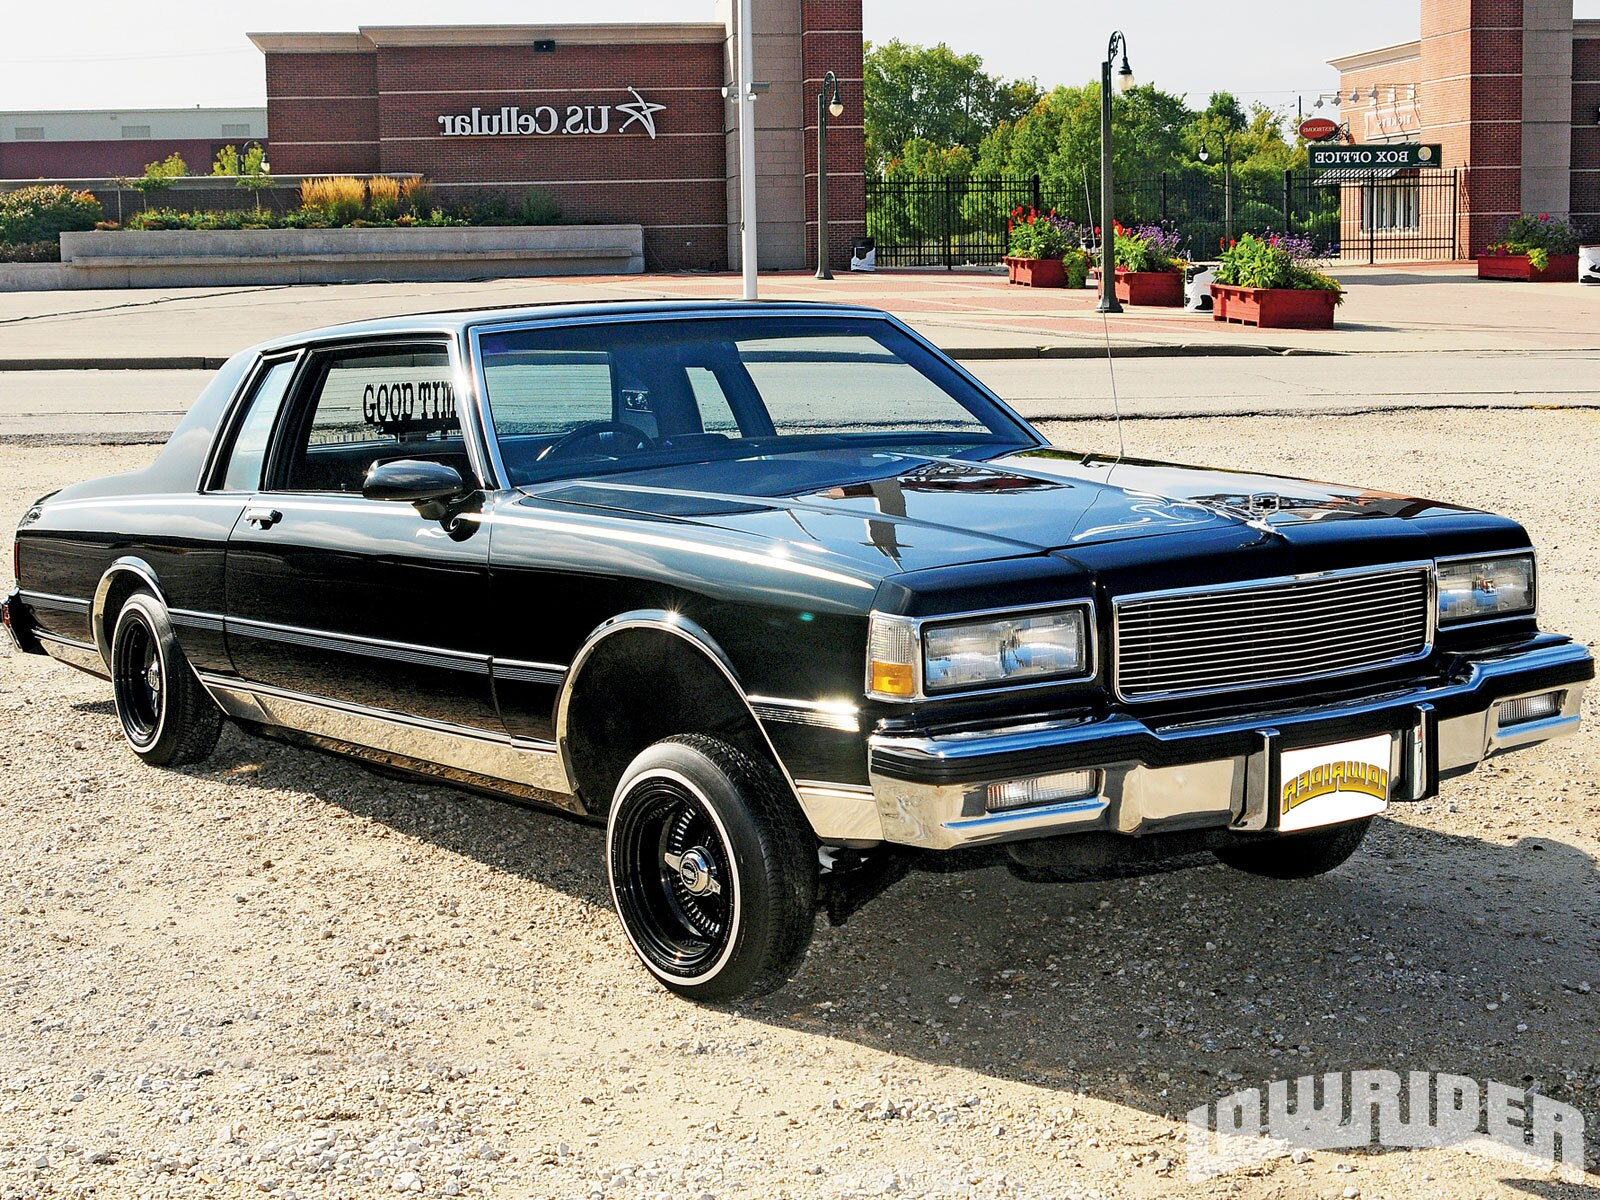 lrmp-1006-01-o-1987-chevy-caprice-front2